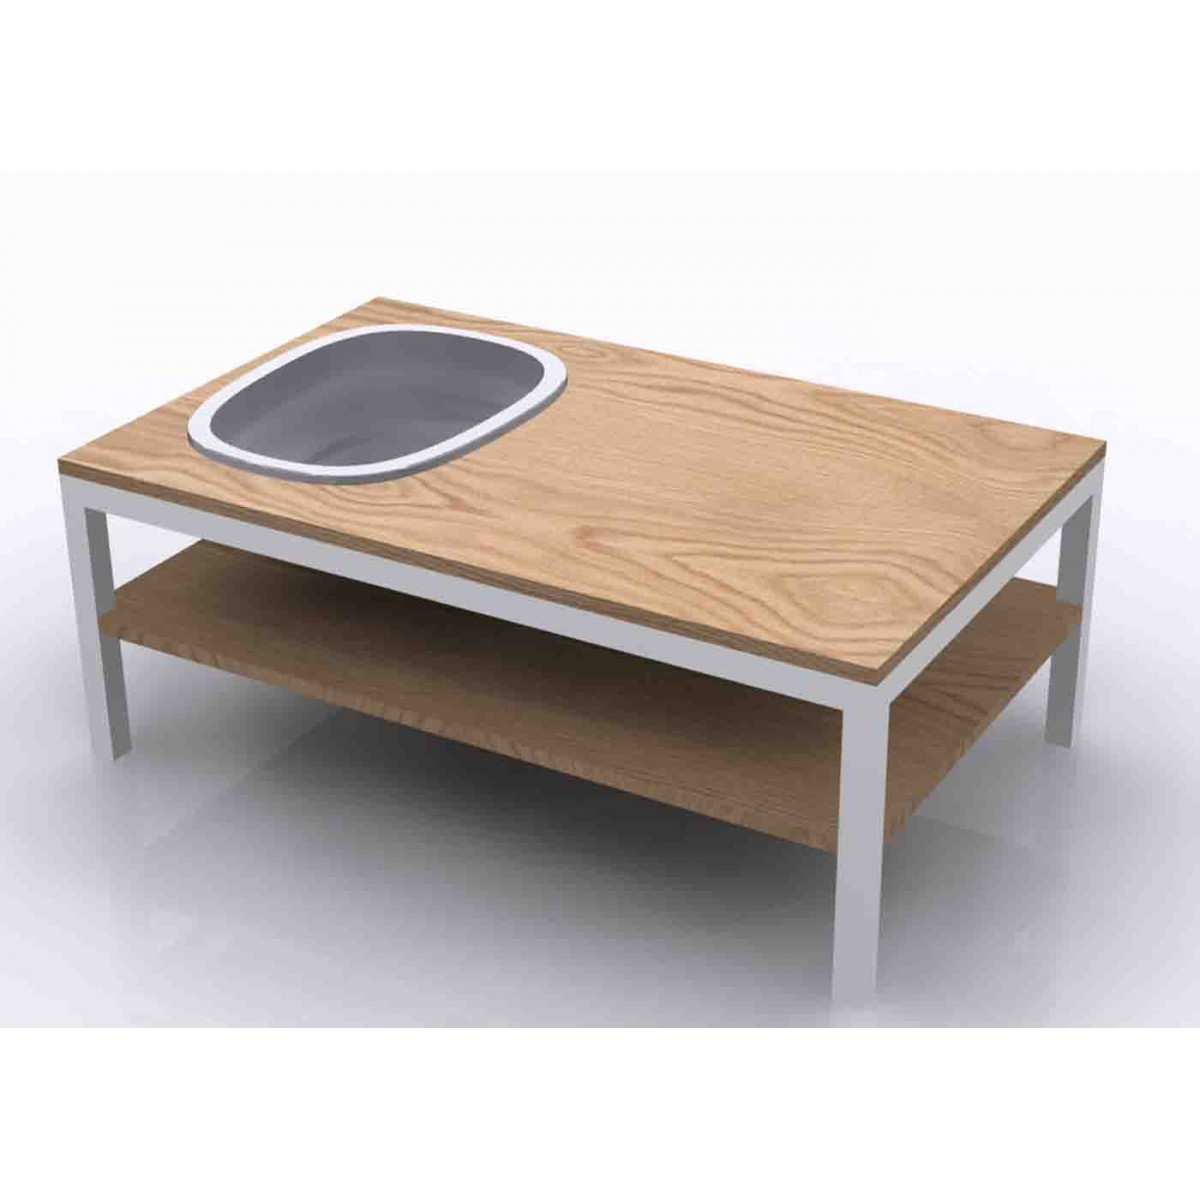 Table basse originale bois maison design - Fabriquer table basse originale ...